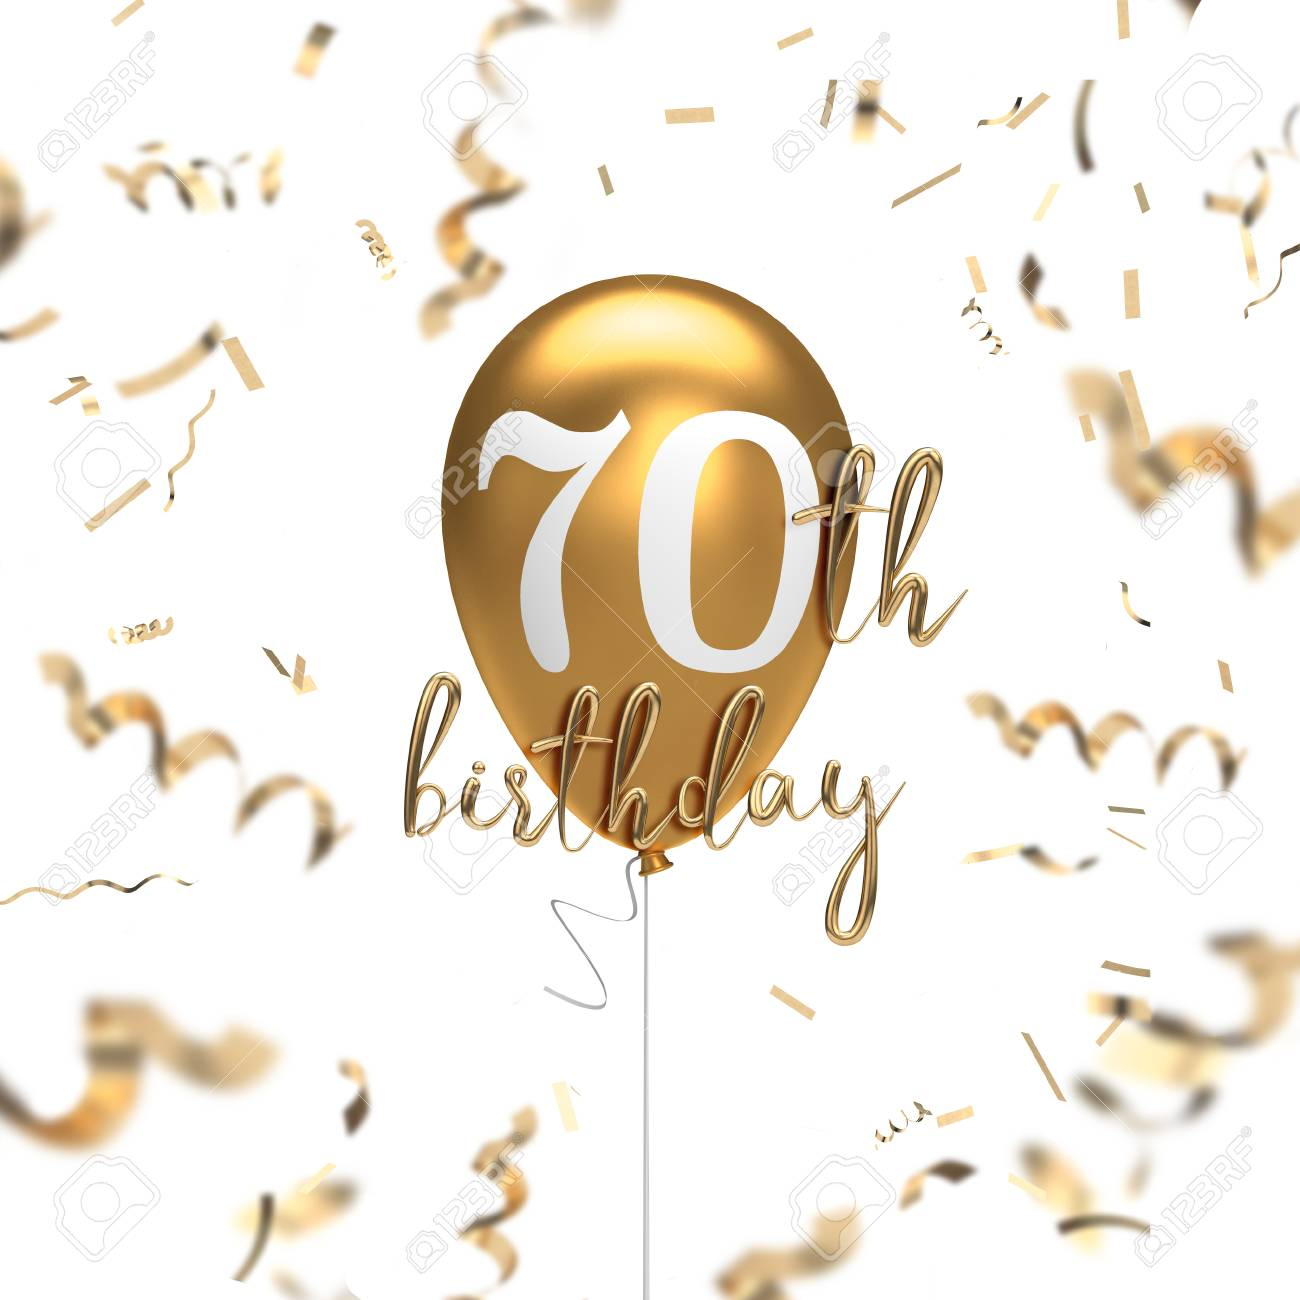 Happy 70th Birthday Gold Balloon Greeting Background 3D Rendering Stock Photo